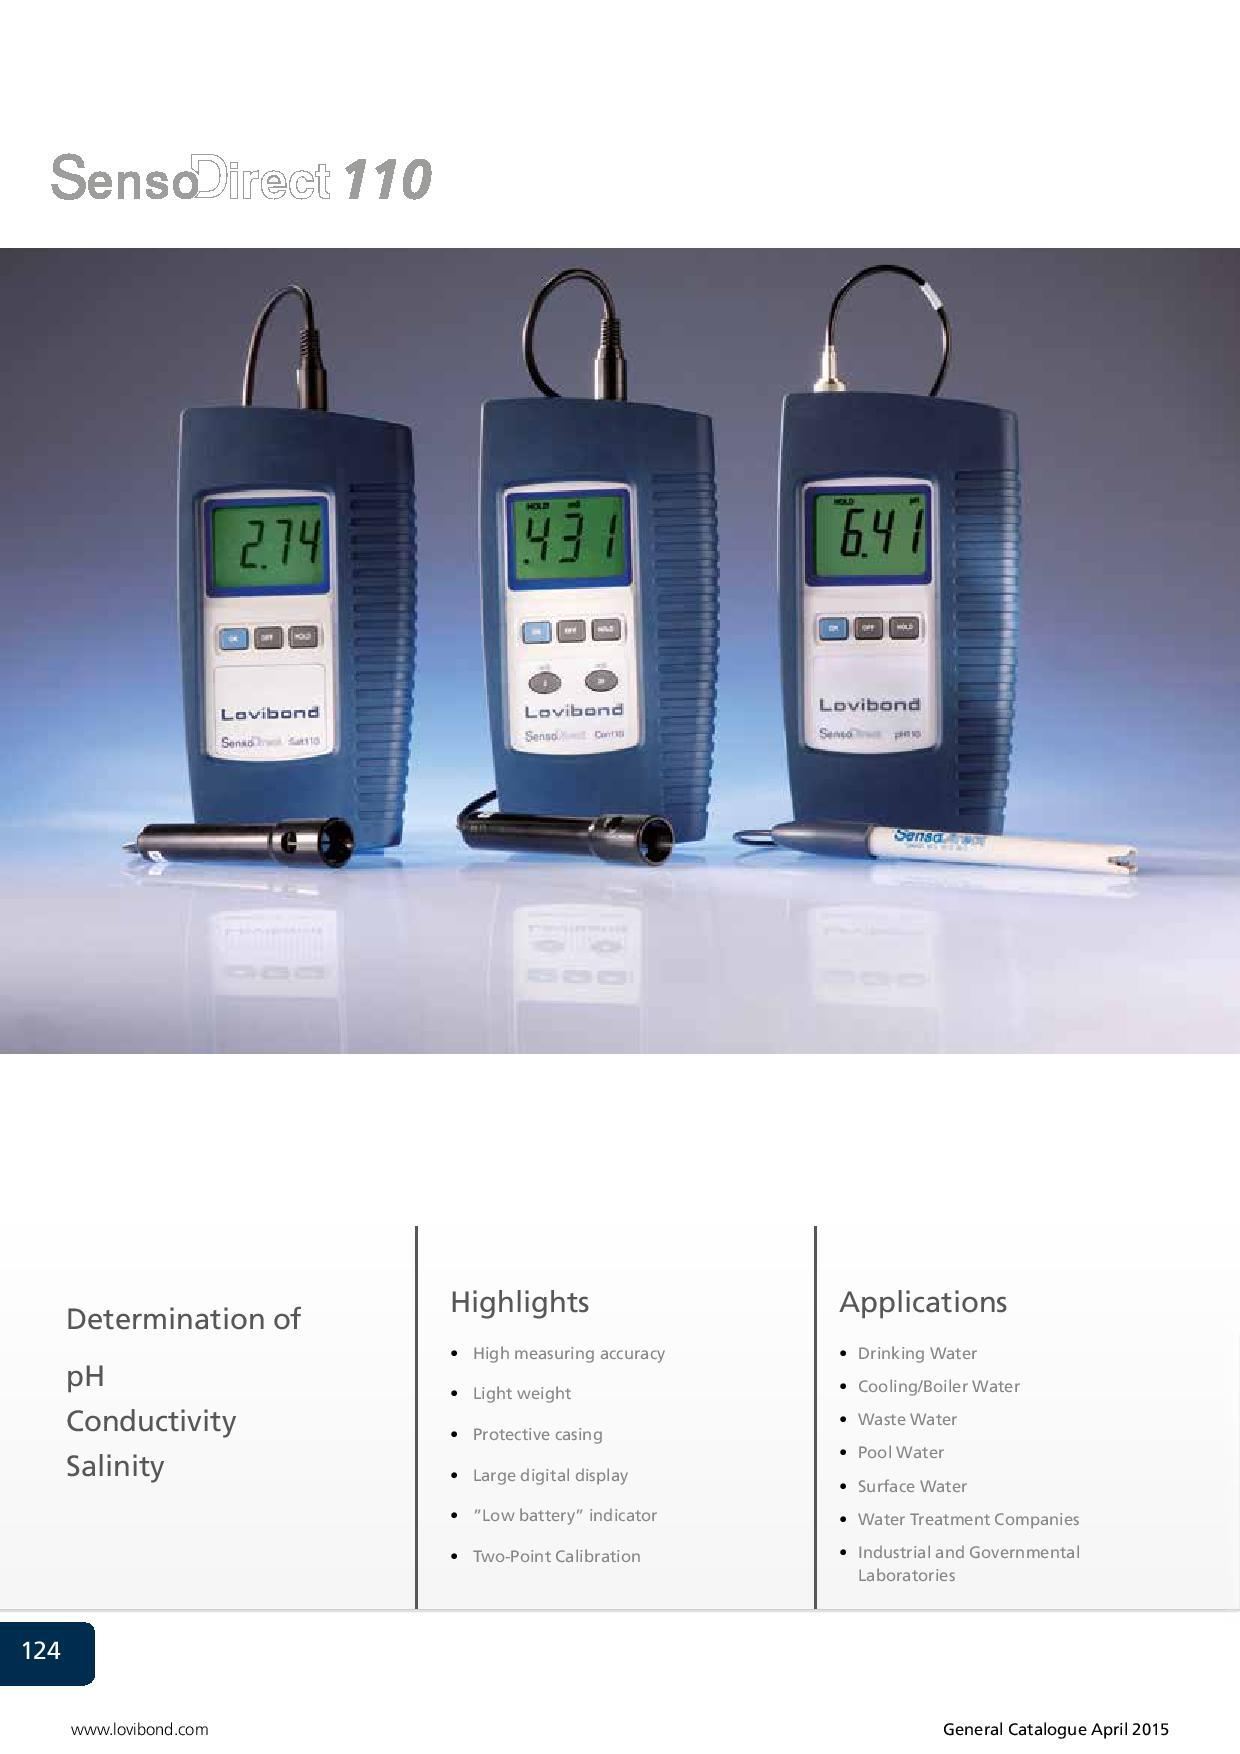 SensoDirect Tintometer 110 pH